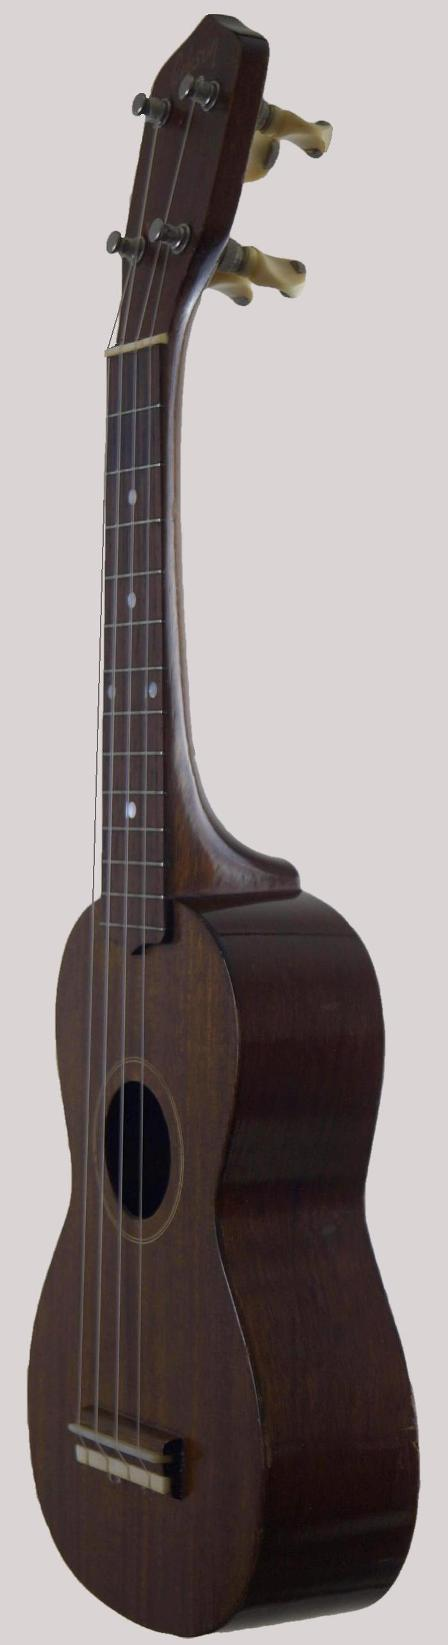 post war gibson soprano ukulele